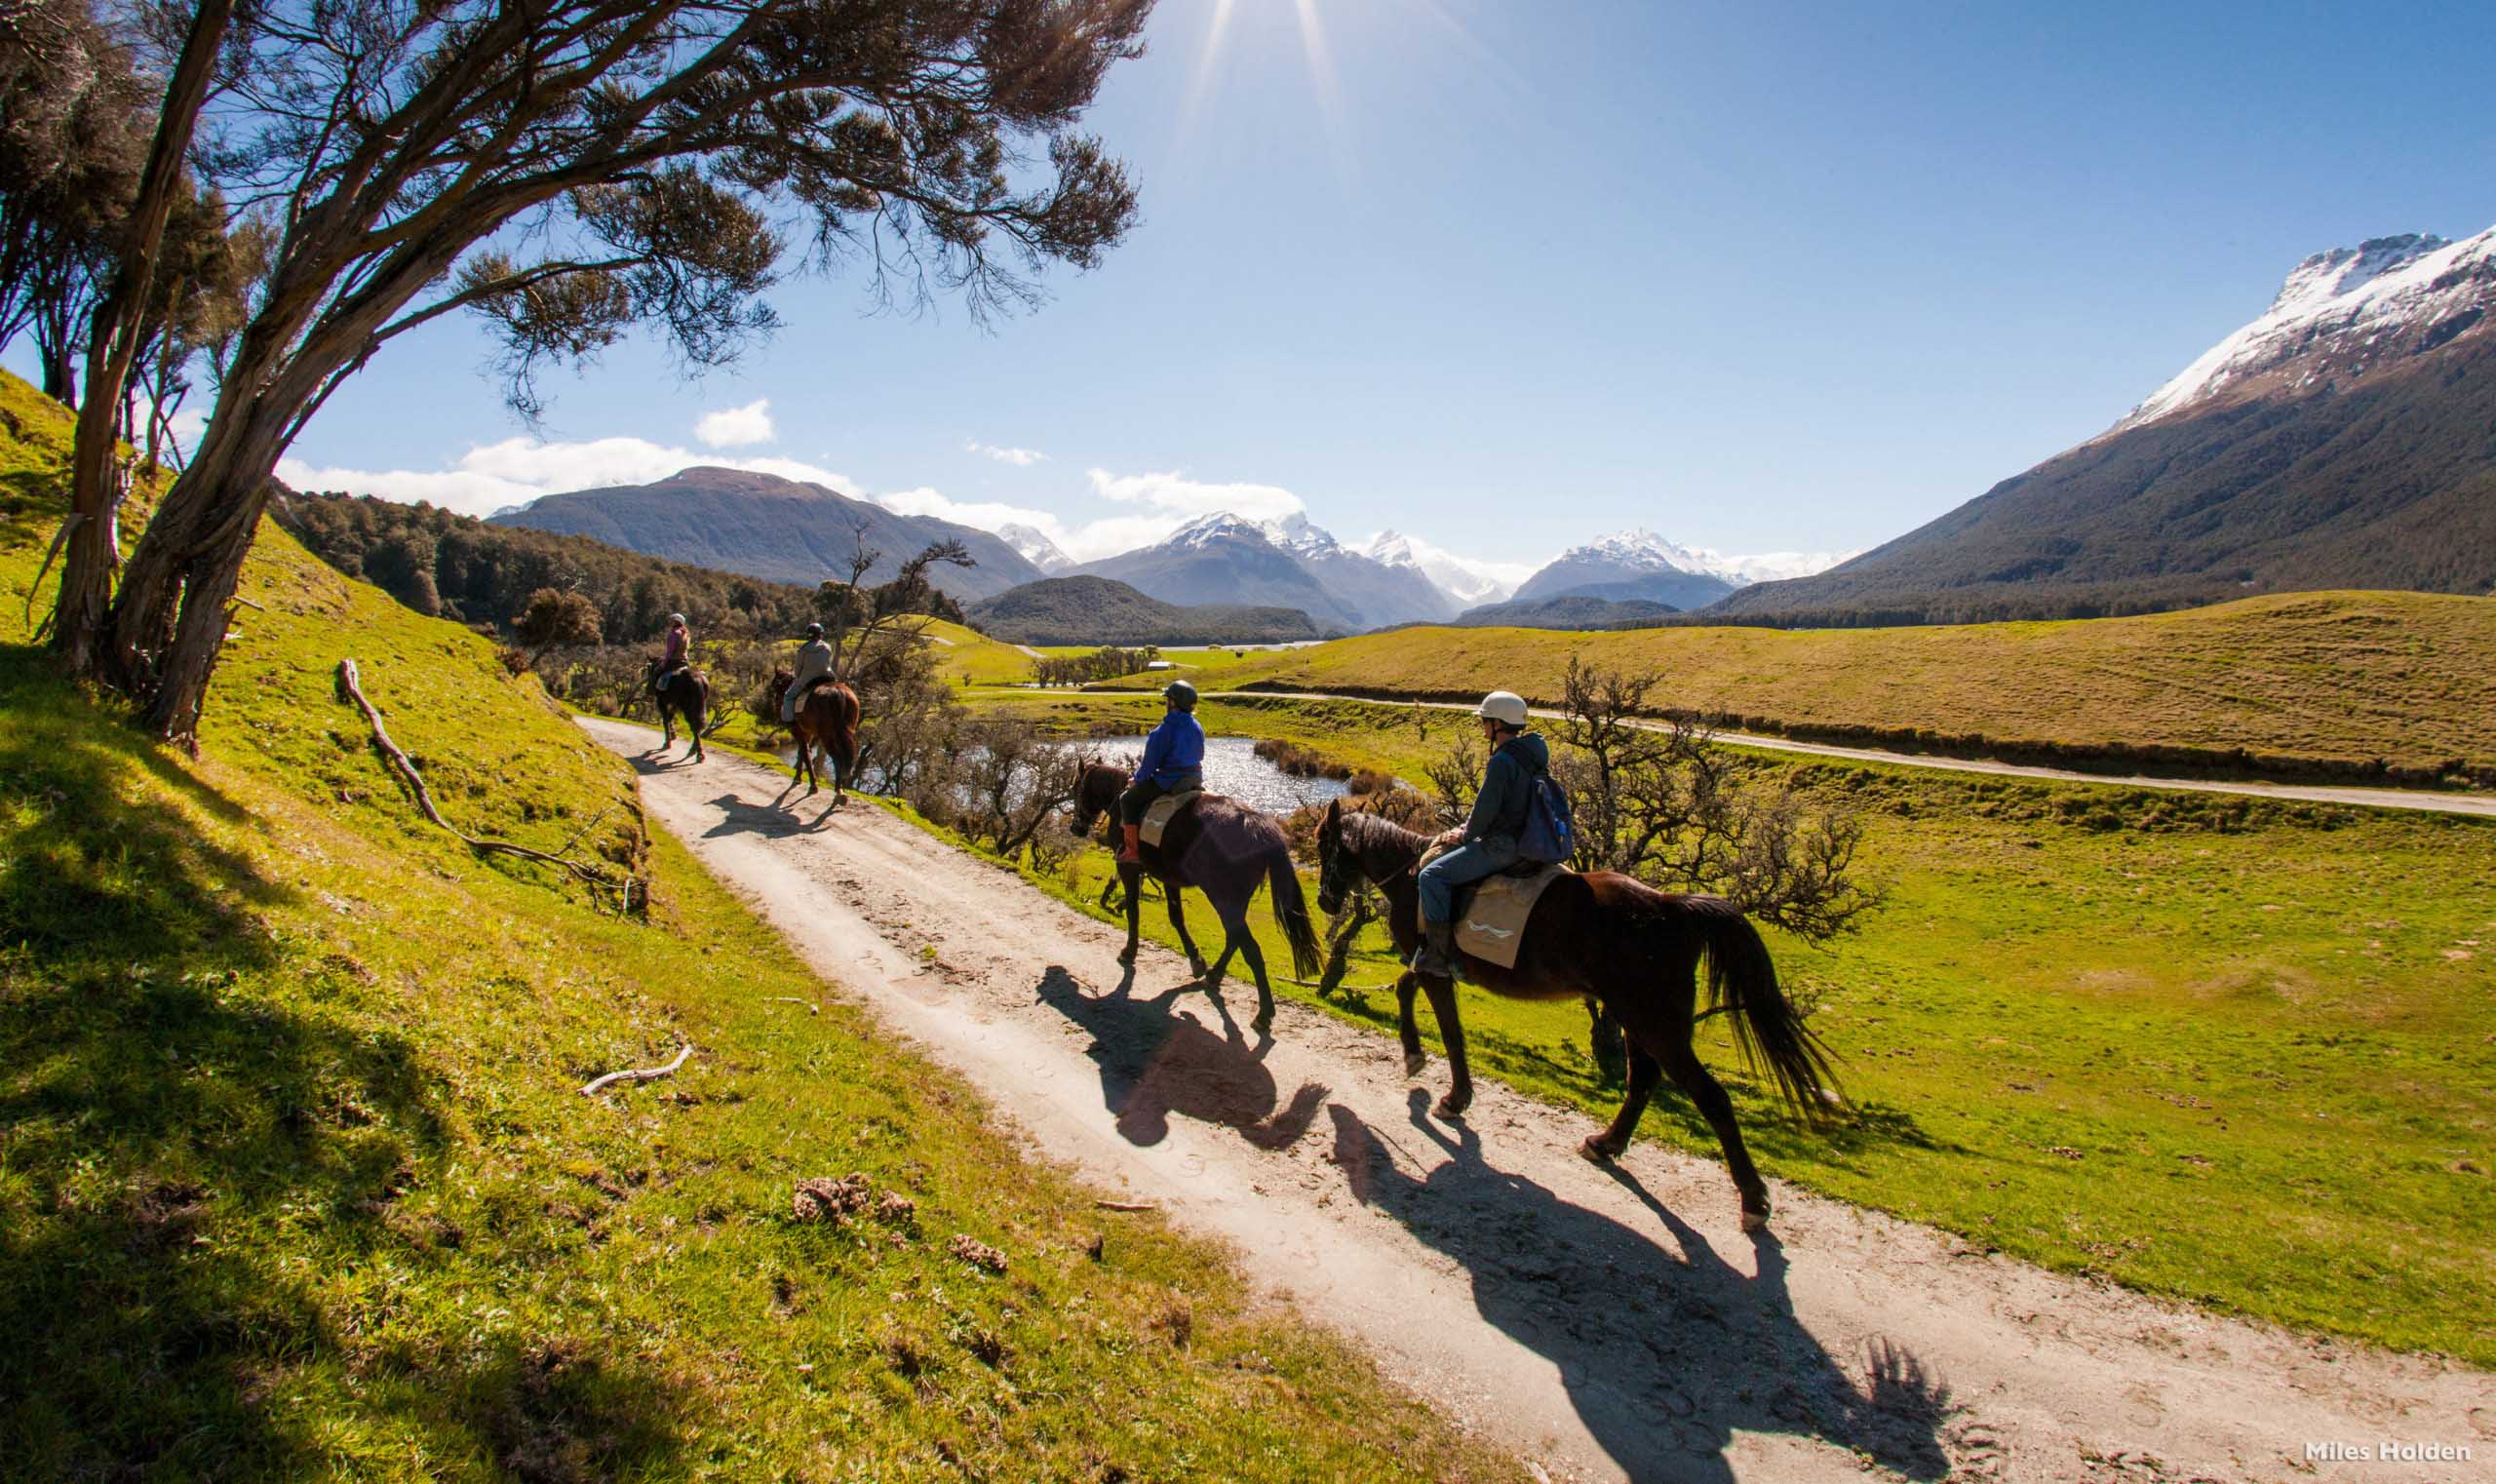 Horse-riding through Glenorchy